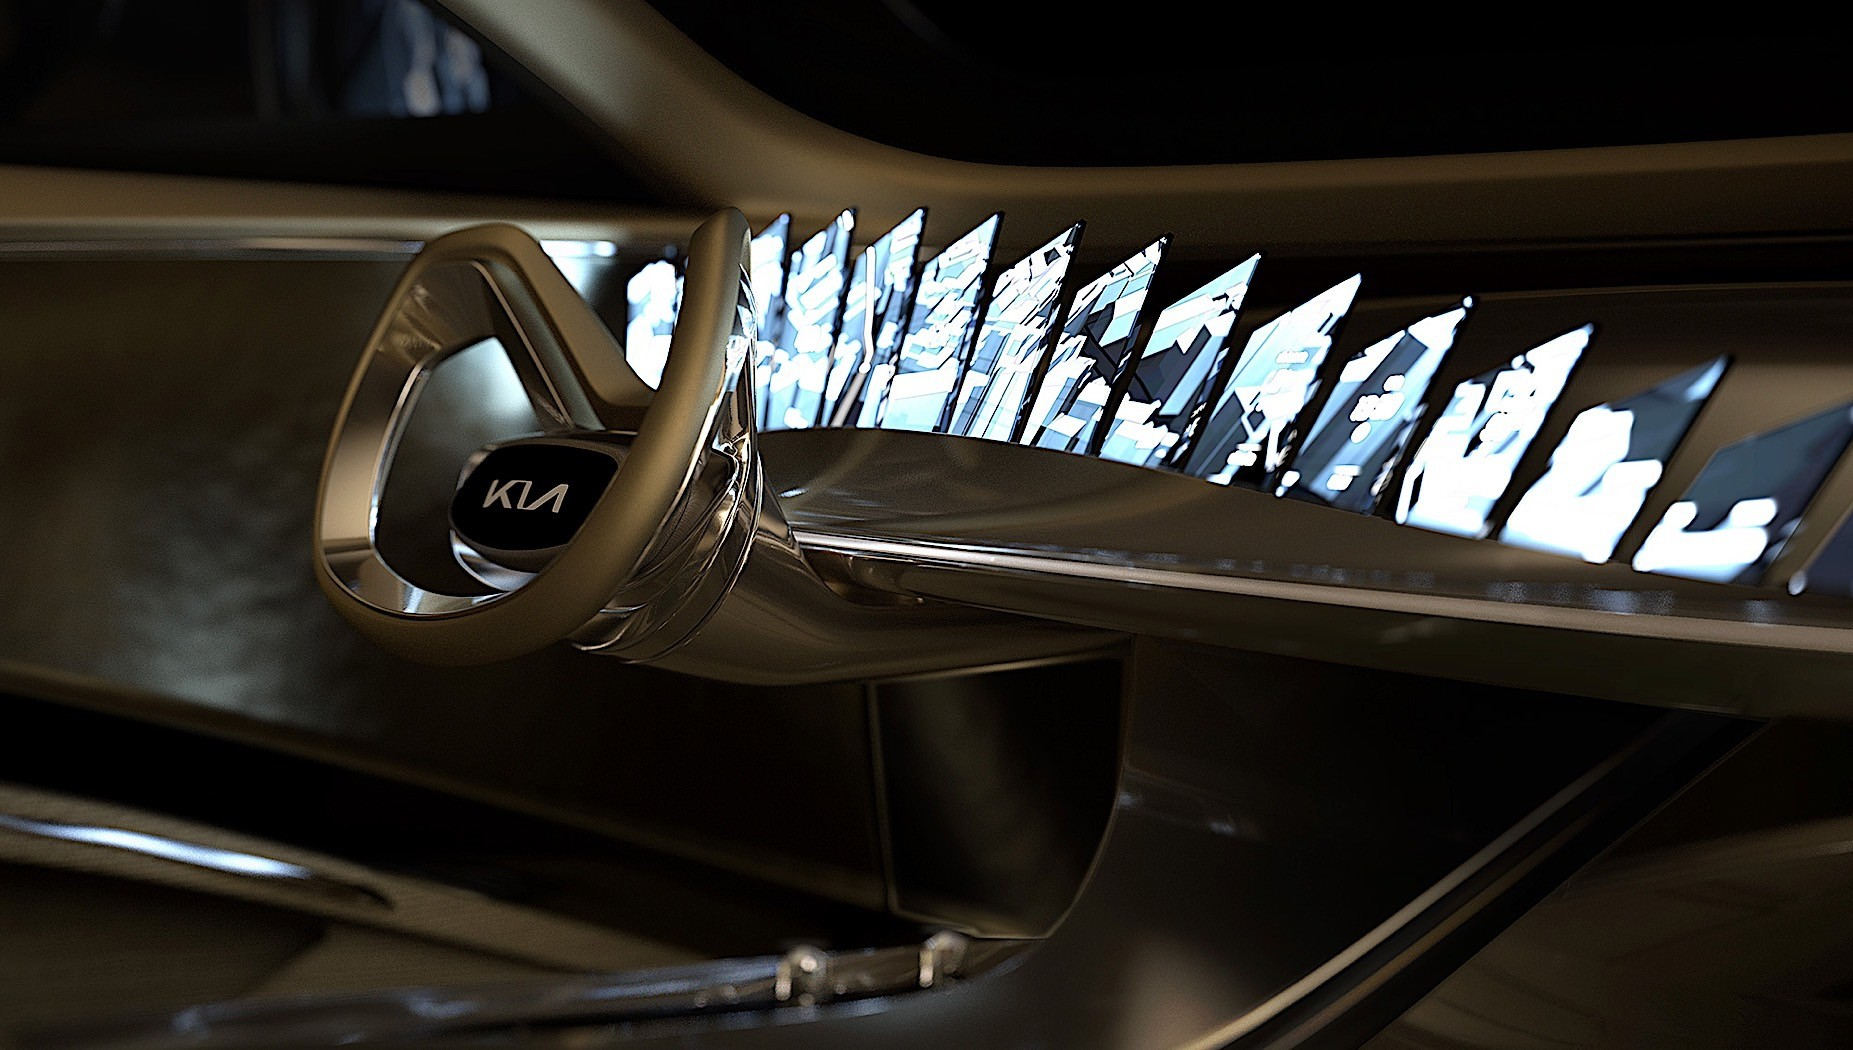 kia electric concept is a house of mirrors with 21 high resolution screens